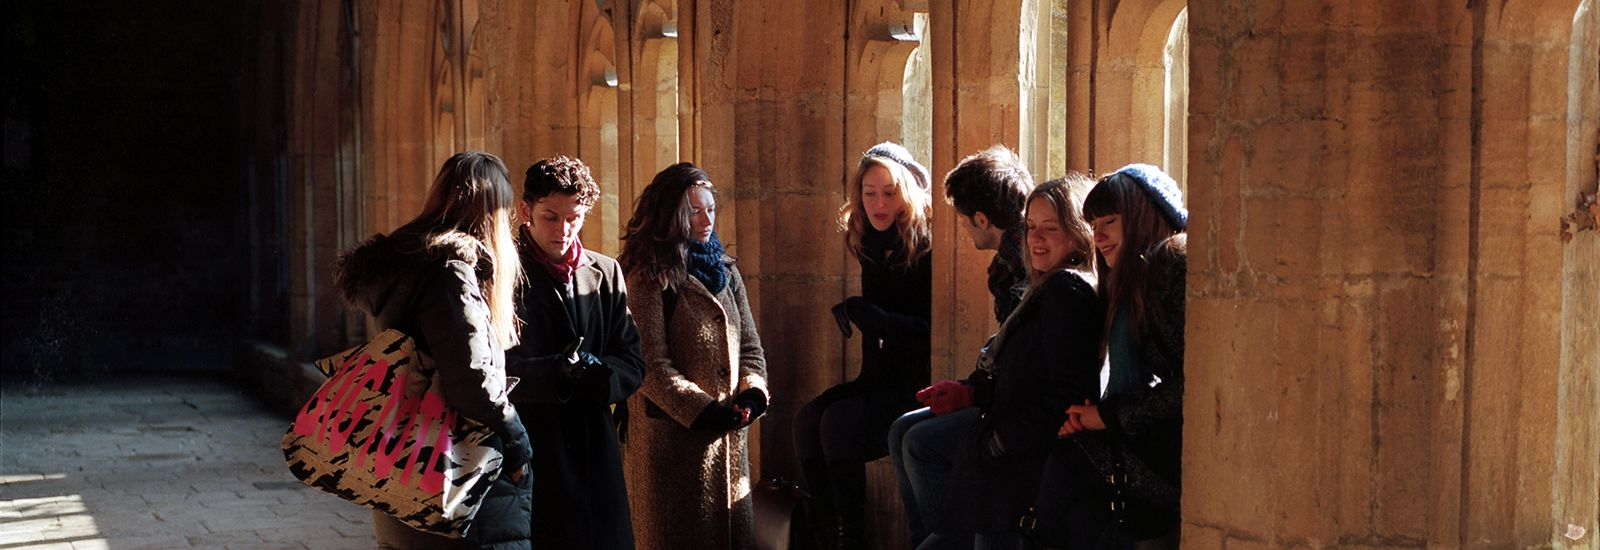 A group of students in cloisters